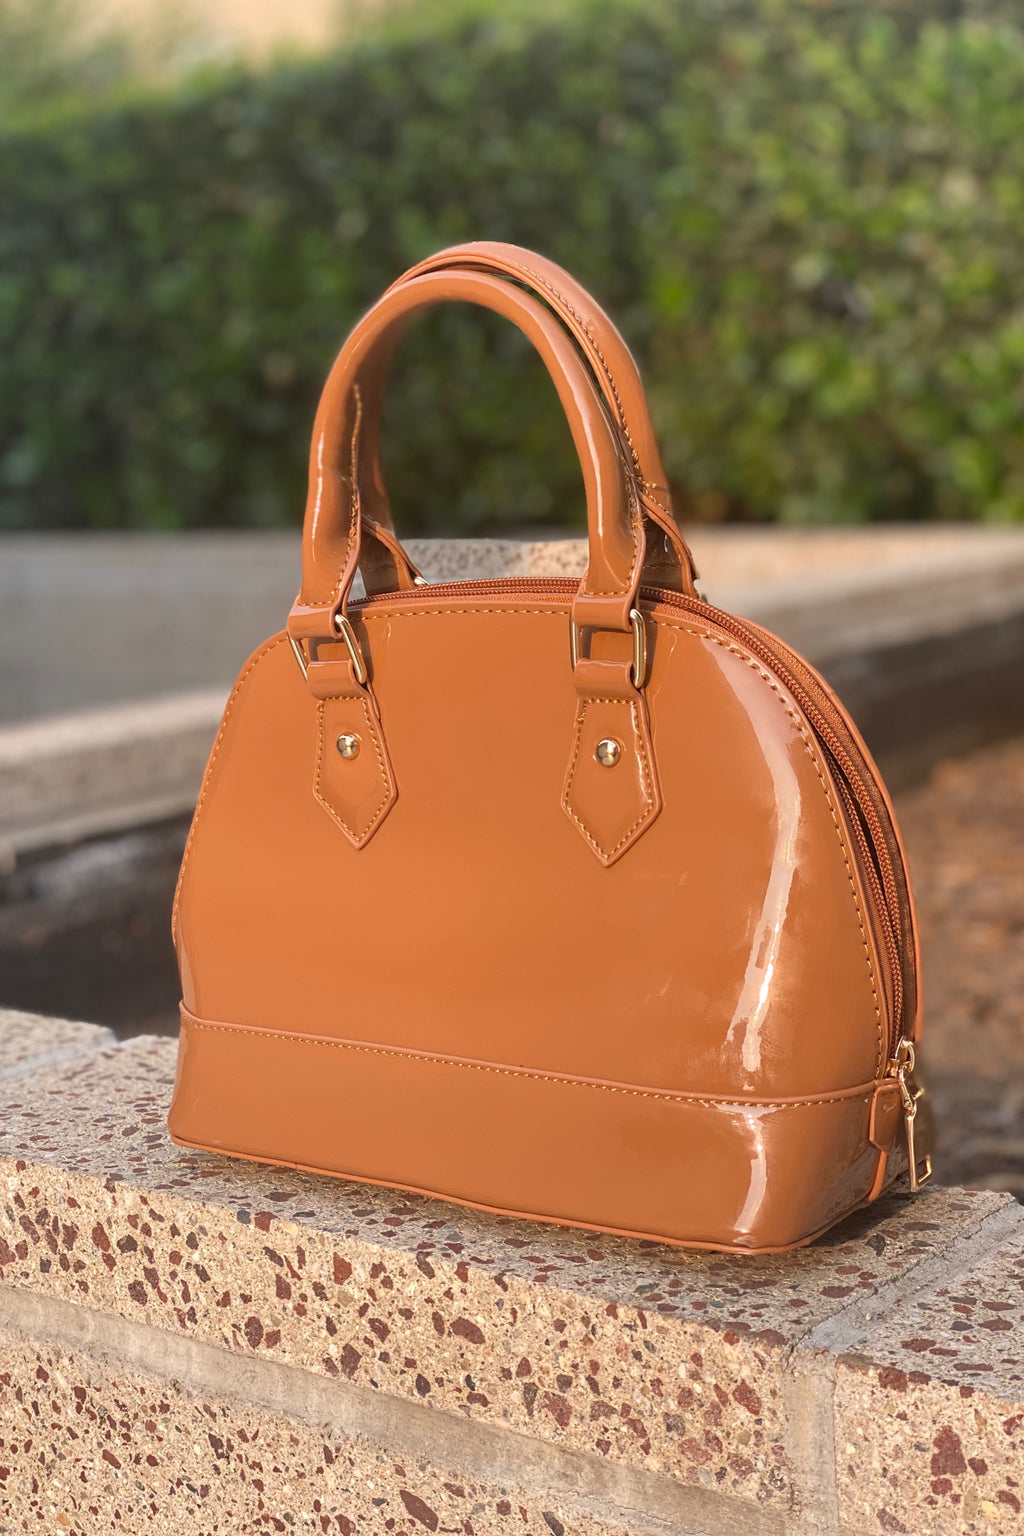 Medium Caramel Bag Hand Strap